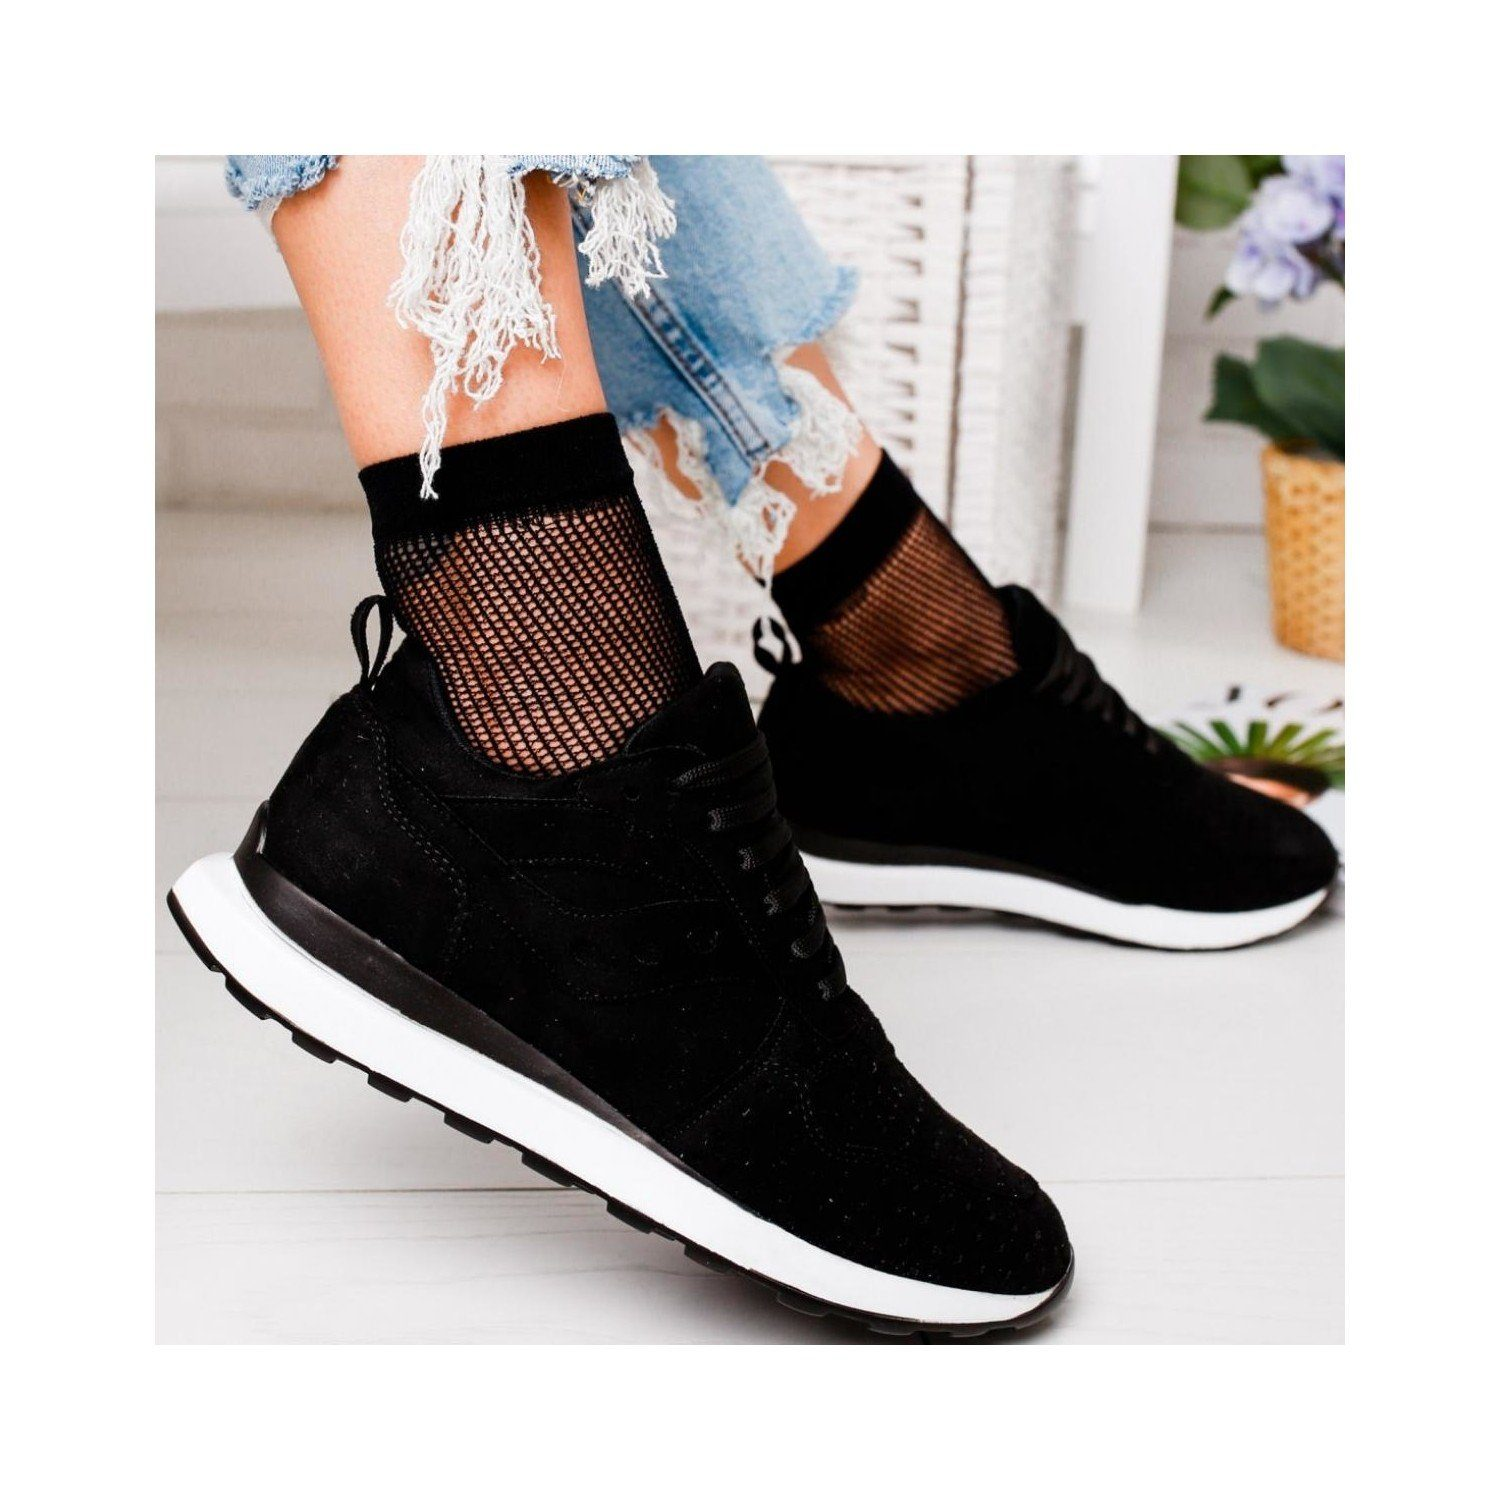 Women's Suede Casual Sports Shoes Sneaker